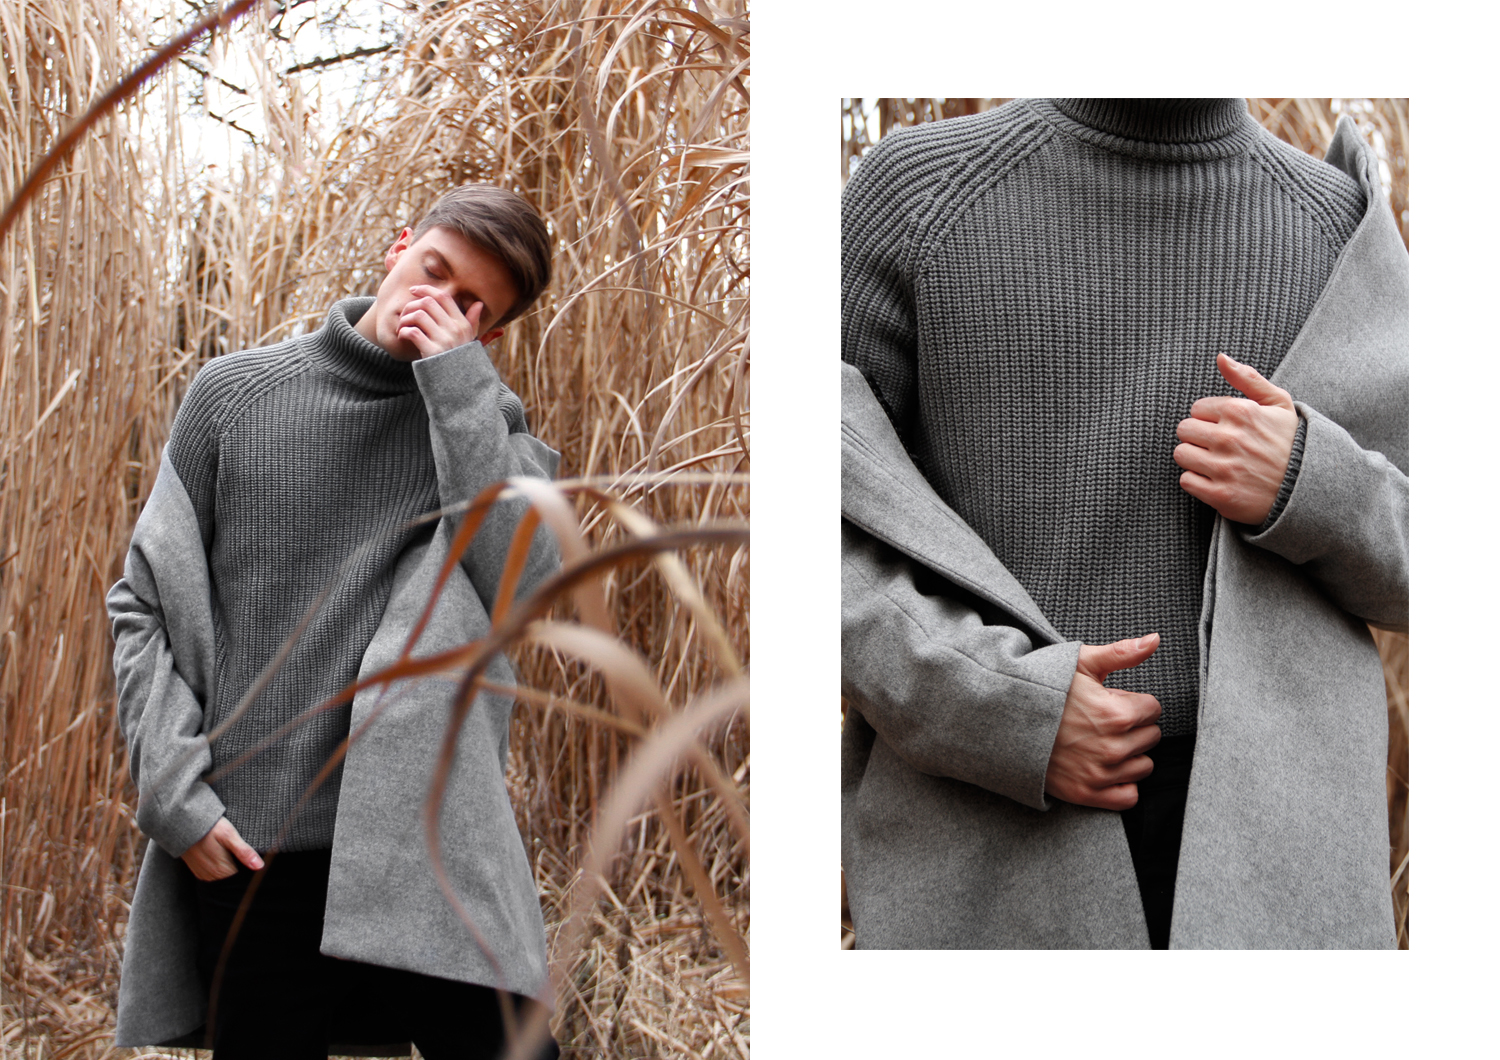 GeorgMallner_Fashion_Outift_Look_Knitted_Turtleneck_Pullover_Coat_Cashmere_50ShadesOFgrey_Fields_editorial_Cornfield_Menswear_Zara_